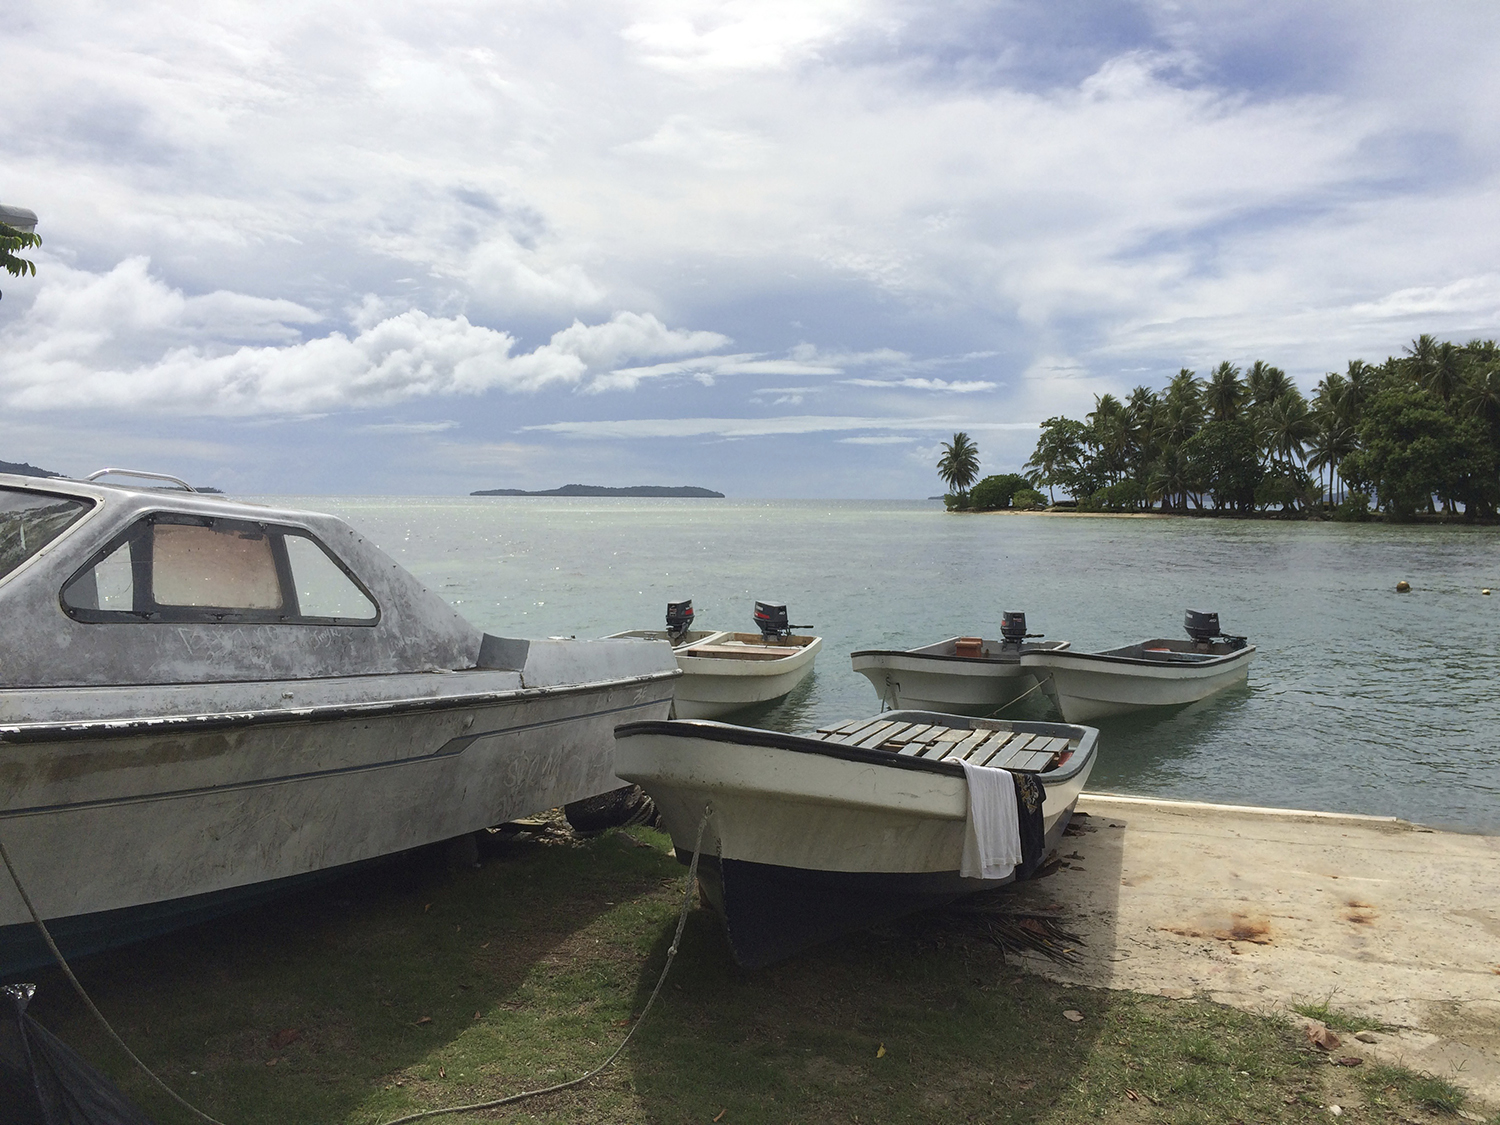 <p>Chuuk Lagoon is home to a world-class dive resort because of its warm, clear waters and the presence of dozens of sunken ships from the Japanese fleet in World War II.</p>